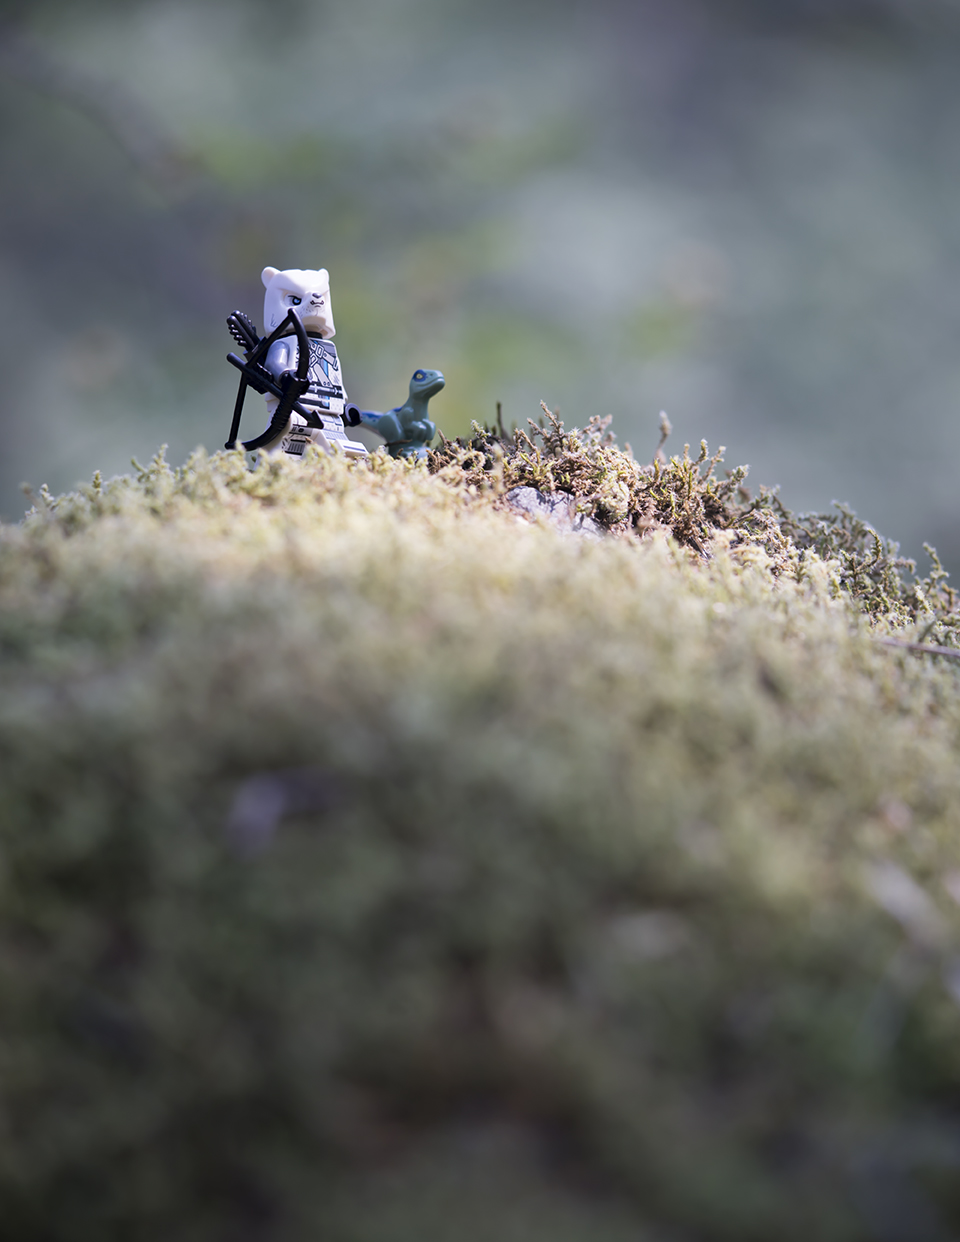 Lego-Chima-Love-Toy-Photography